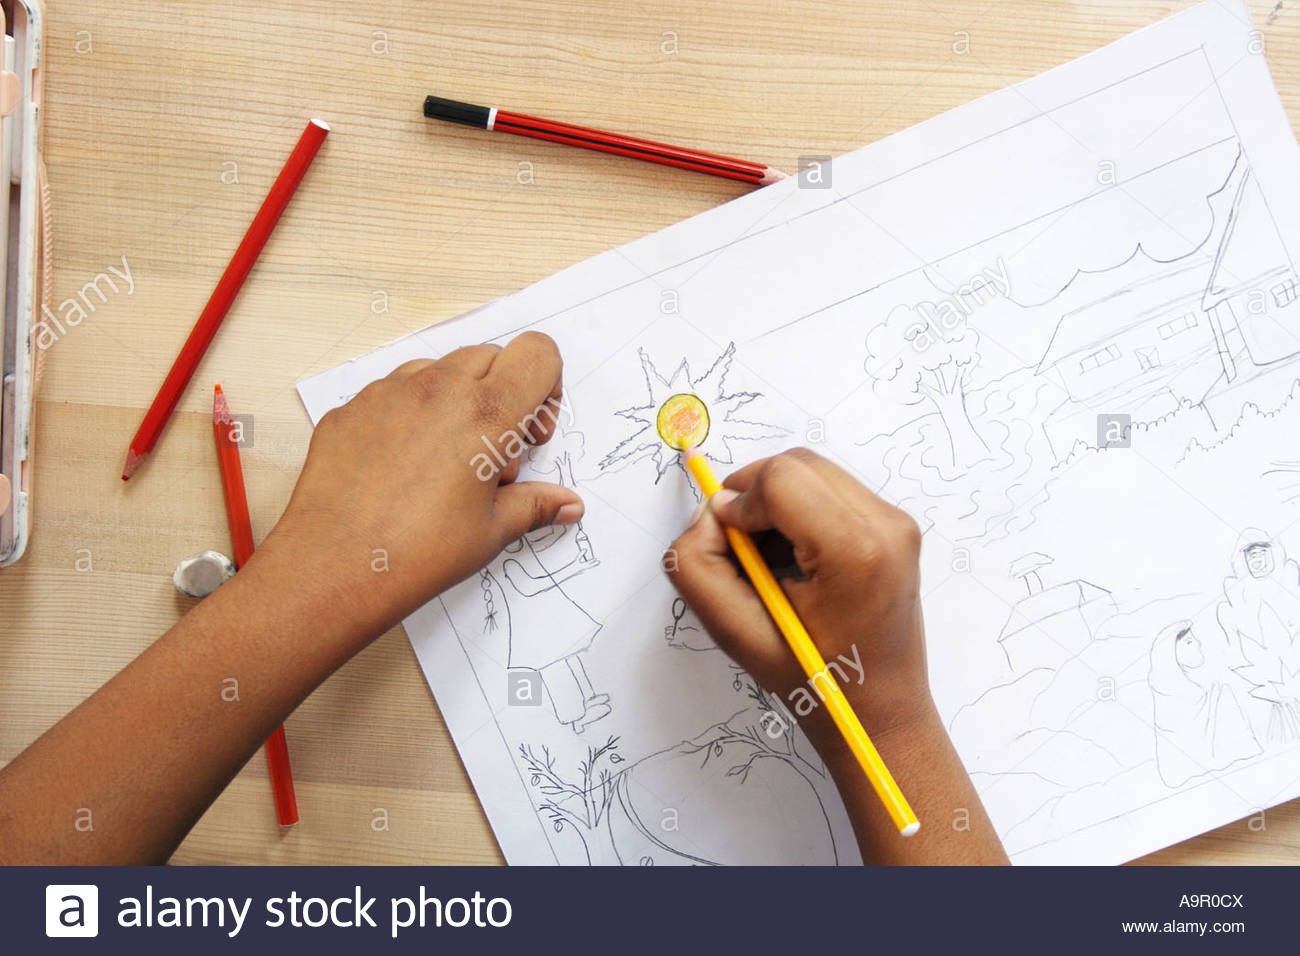 1300x956 School Kid Drawing On A Chart Stock Photo 12421849